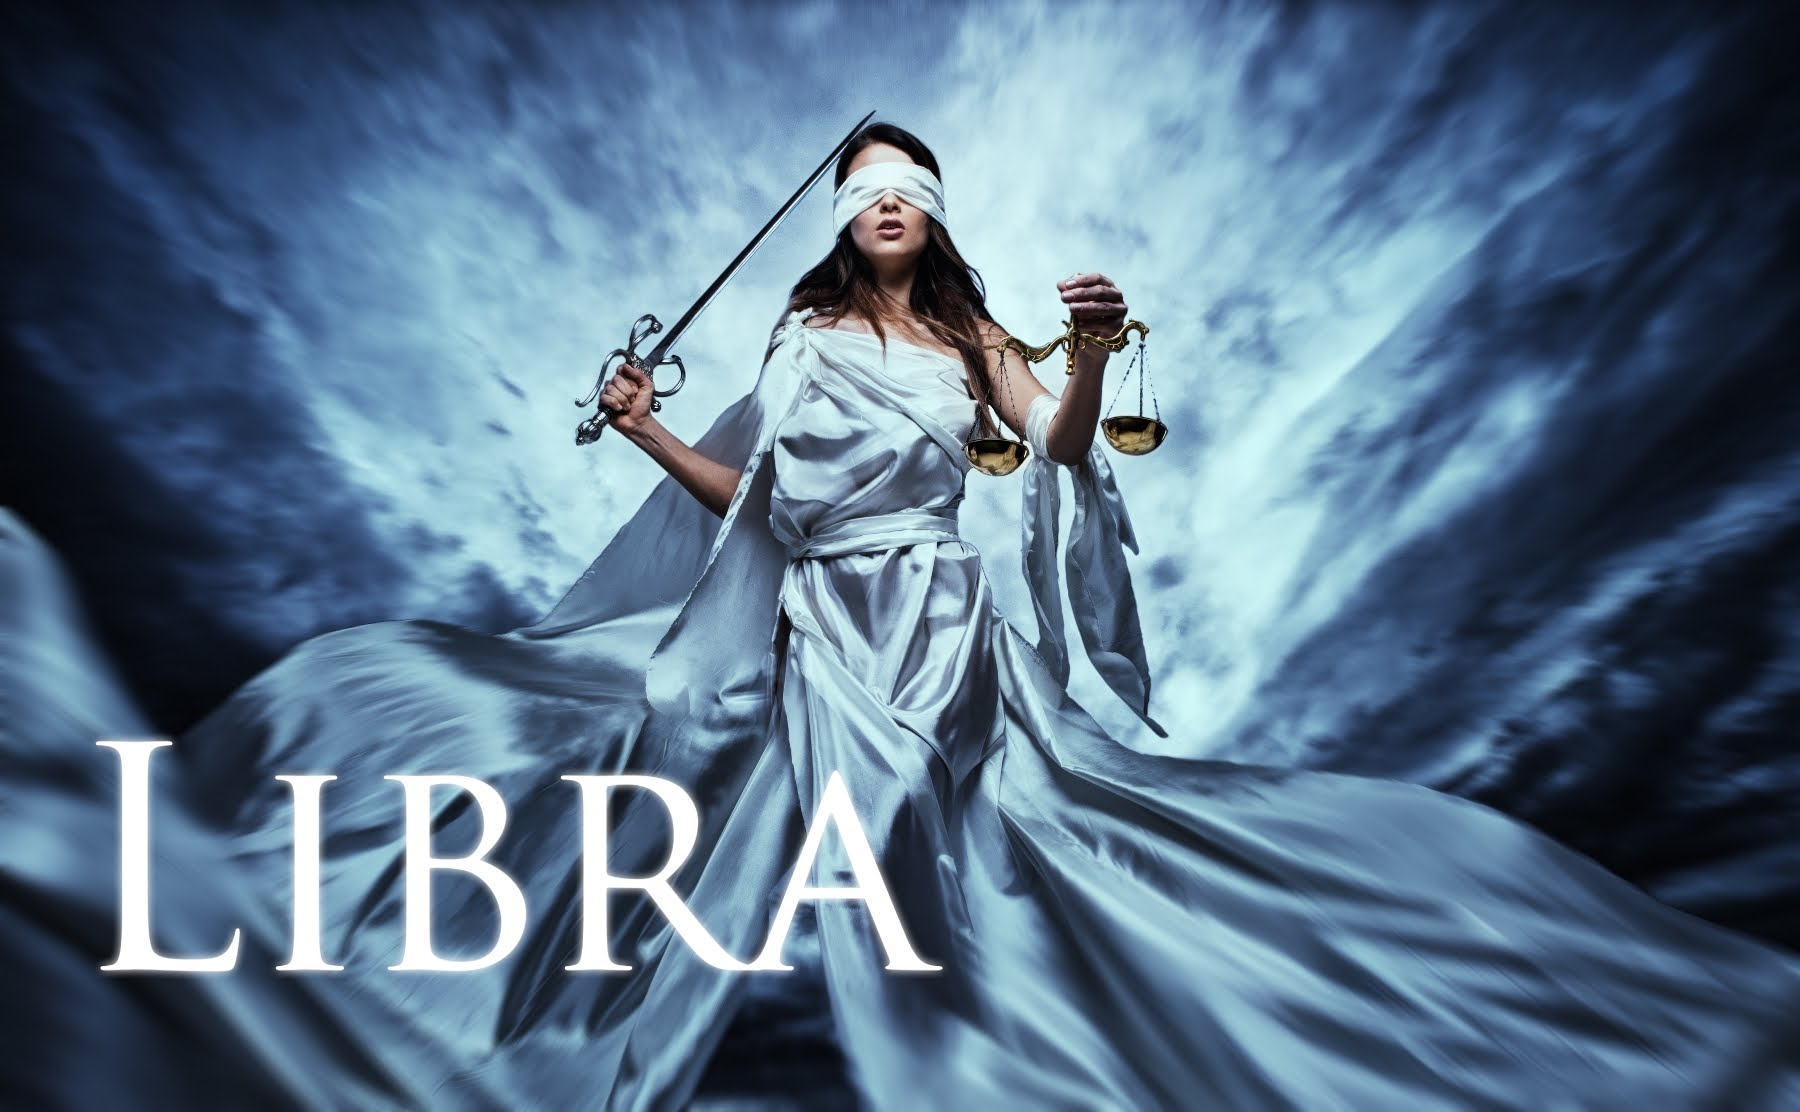 Libra Traits 10 Positive Libra Traits That Makes Them An Admirable